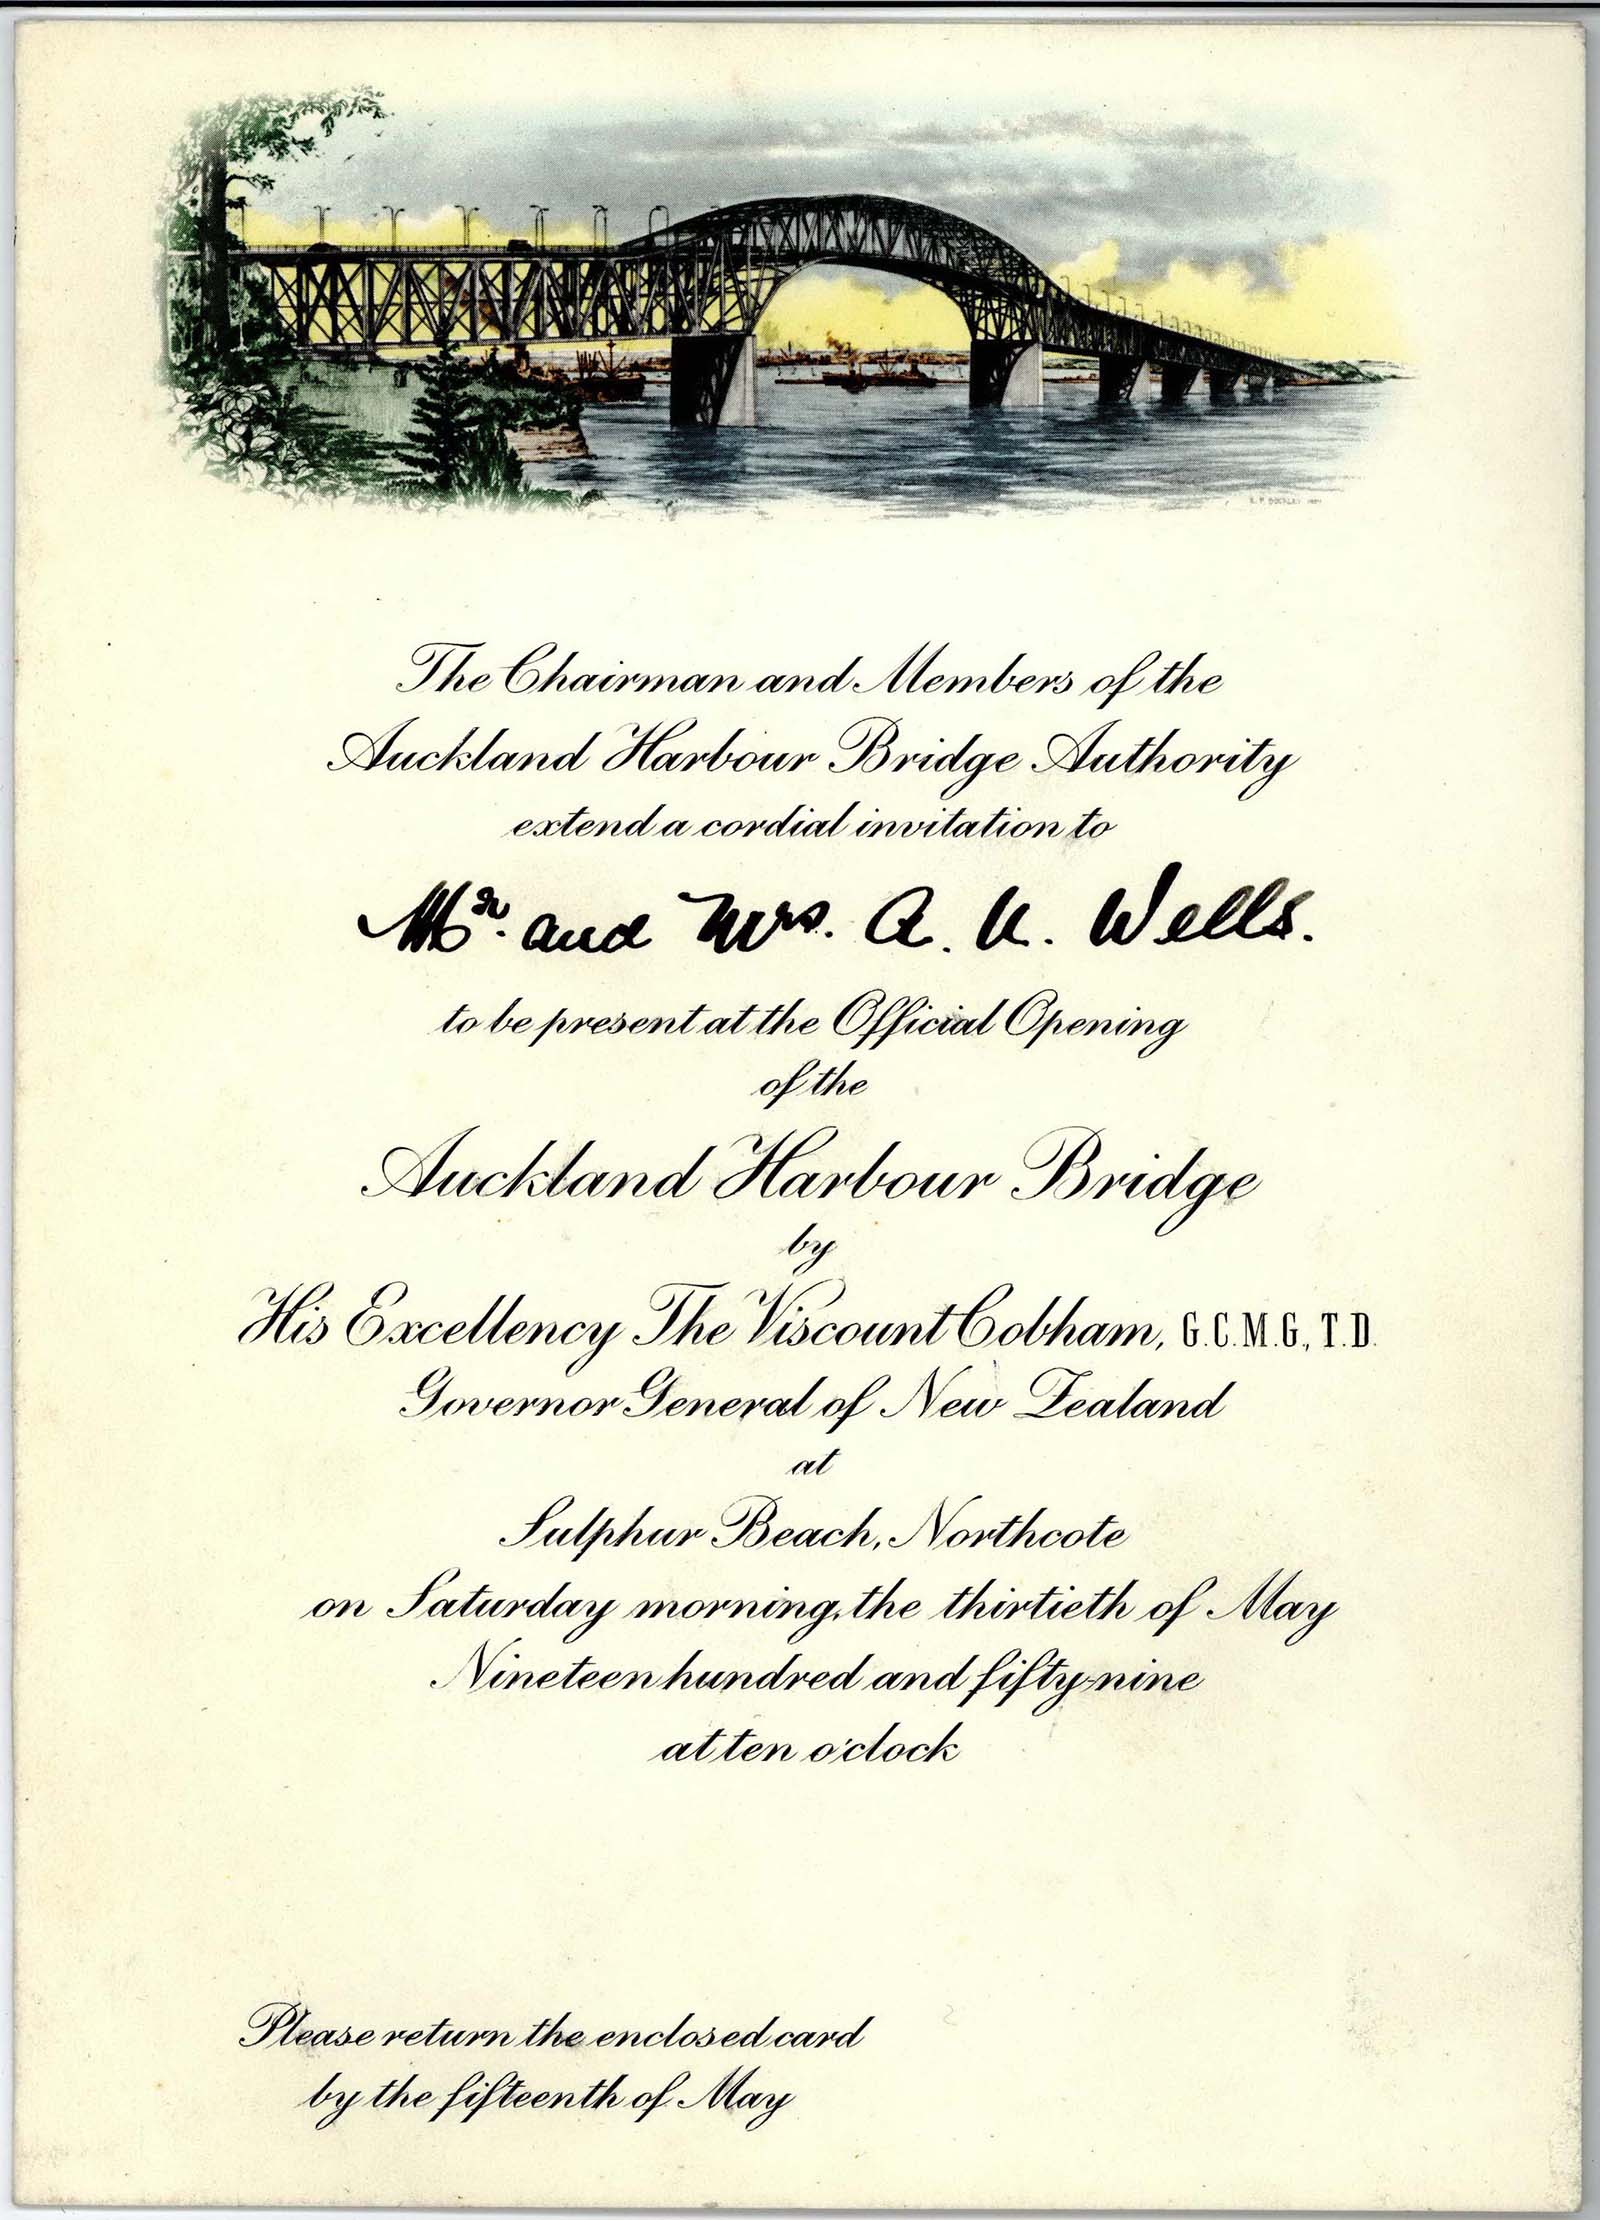 A scanned image showing the invitation to the opening ceremony of Auckland Harbour Bridge